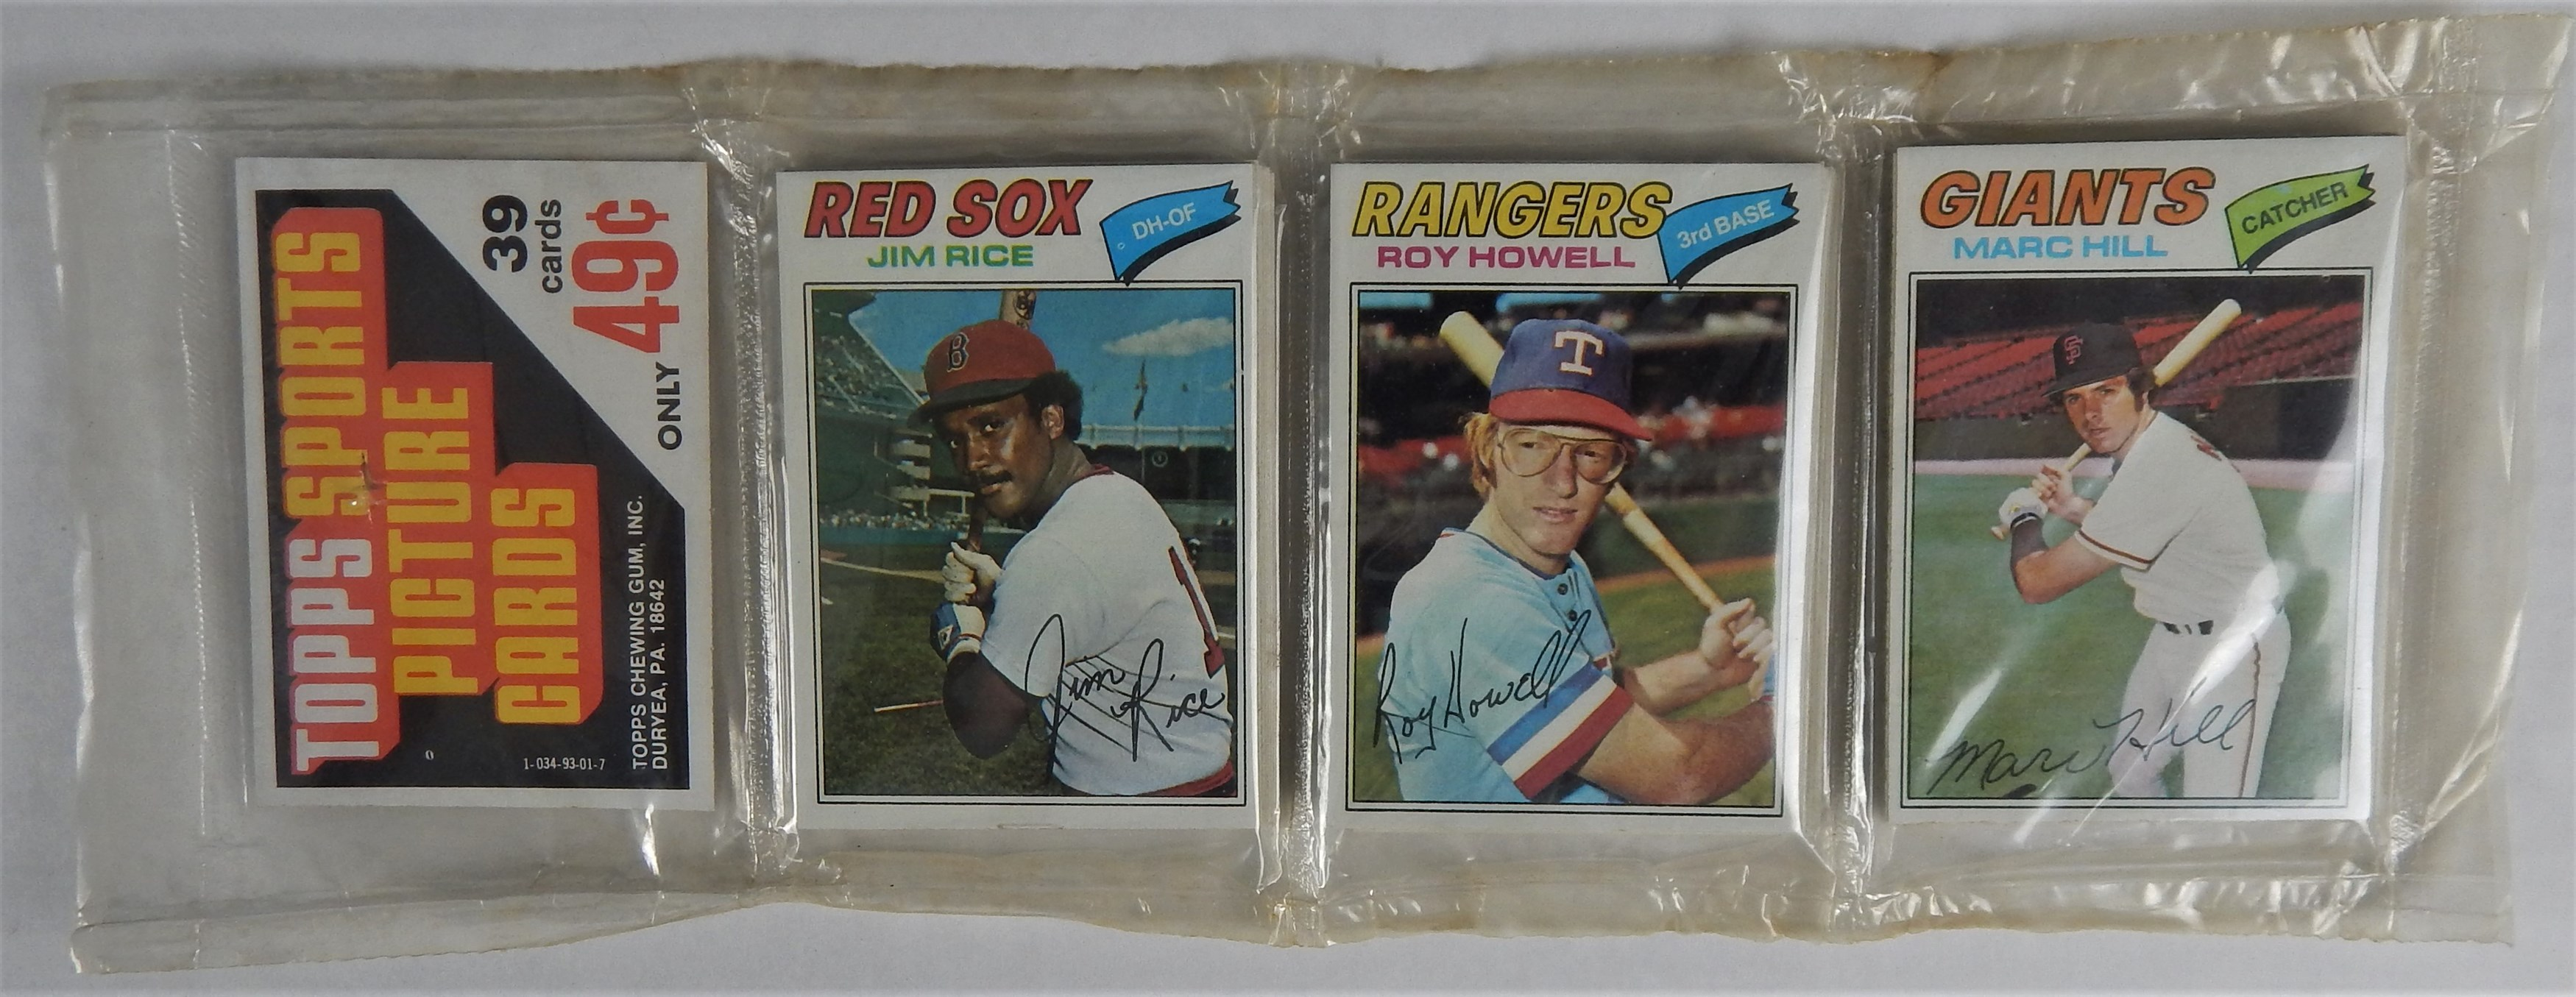 1977 Topps Baseball Rack Pack with Rose on The Back